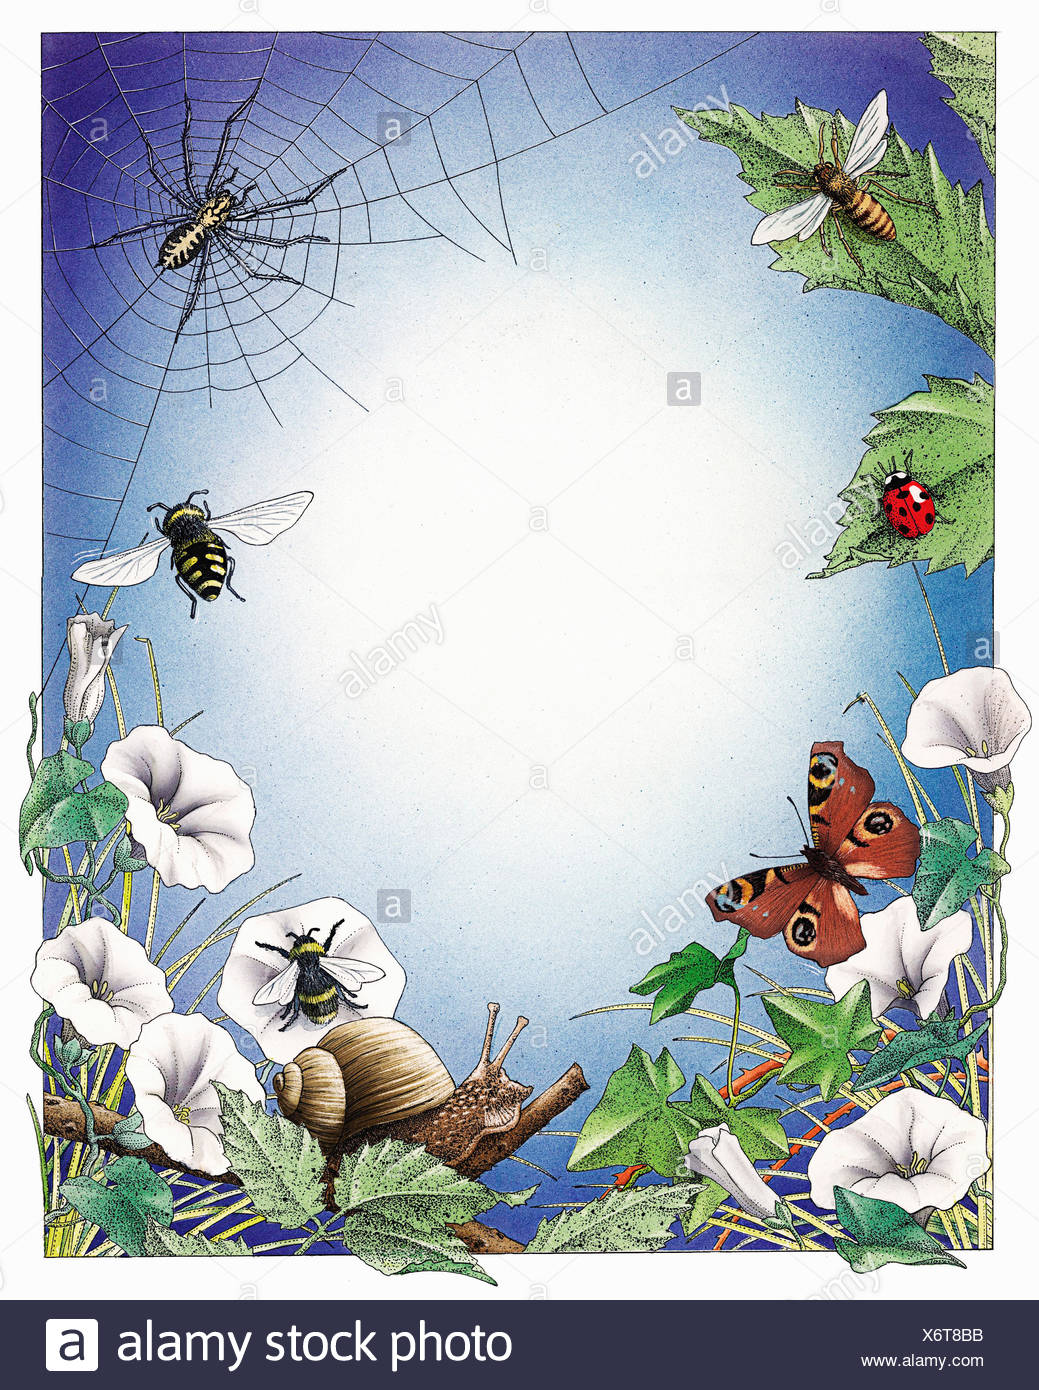 Spider, snail and insects in border of wildflower foliage - Stock Image